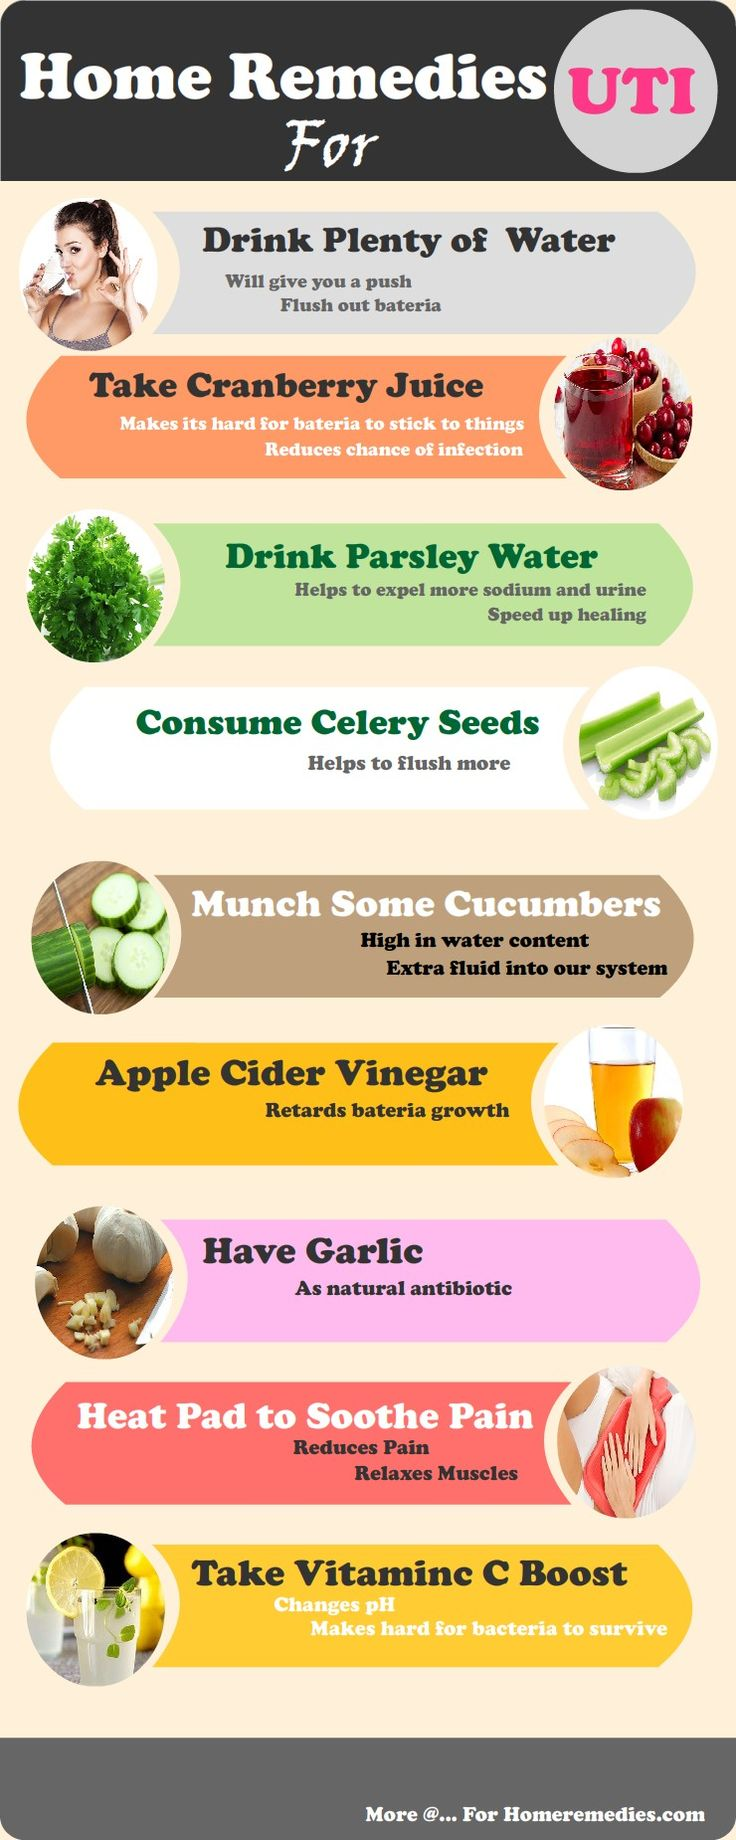 How to get rid of uti : Natural home remedies for uti. Drink Water, celery, parsley, cucumber, cranberry juice, Lemon juice, Apple cider vinegar, Garlic and heat pad for urinary tract infection